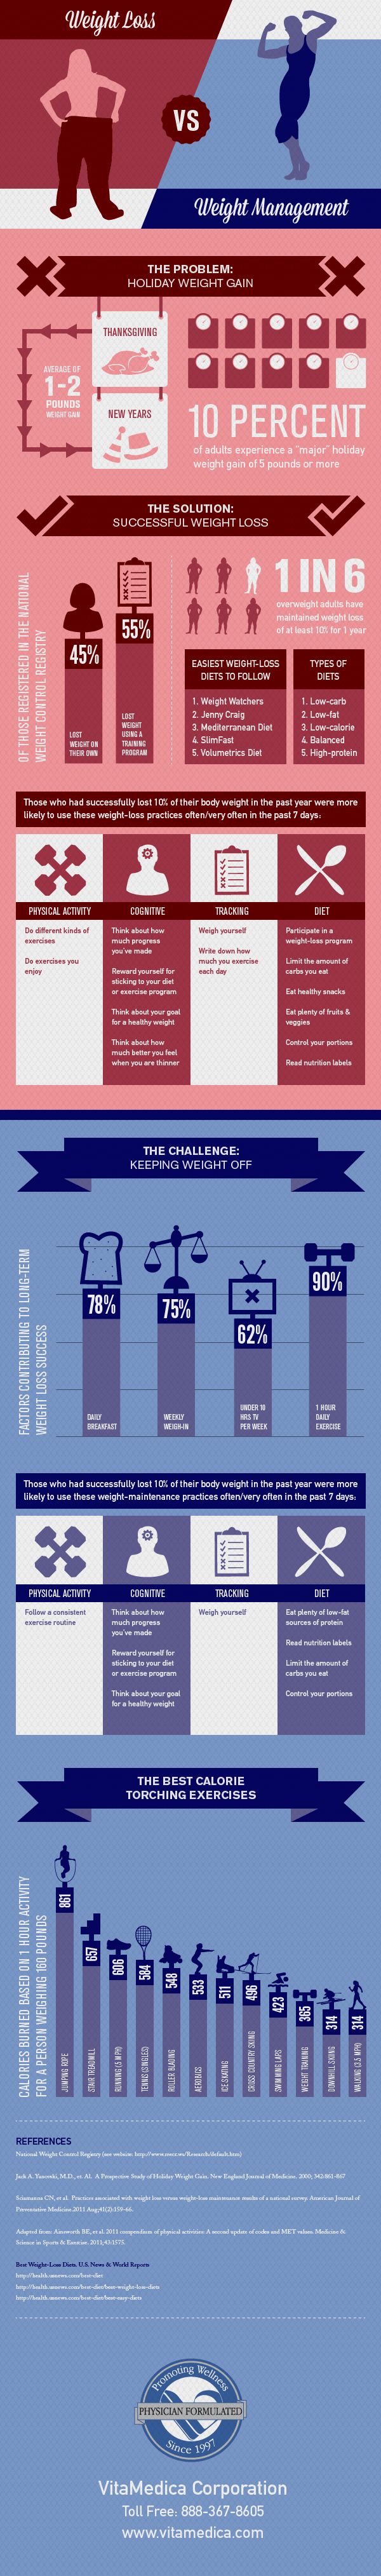 Weight Loss vs. Weight Maintenance Infographic